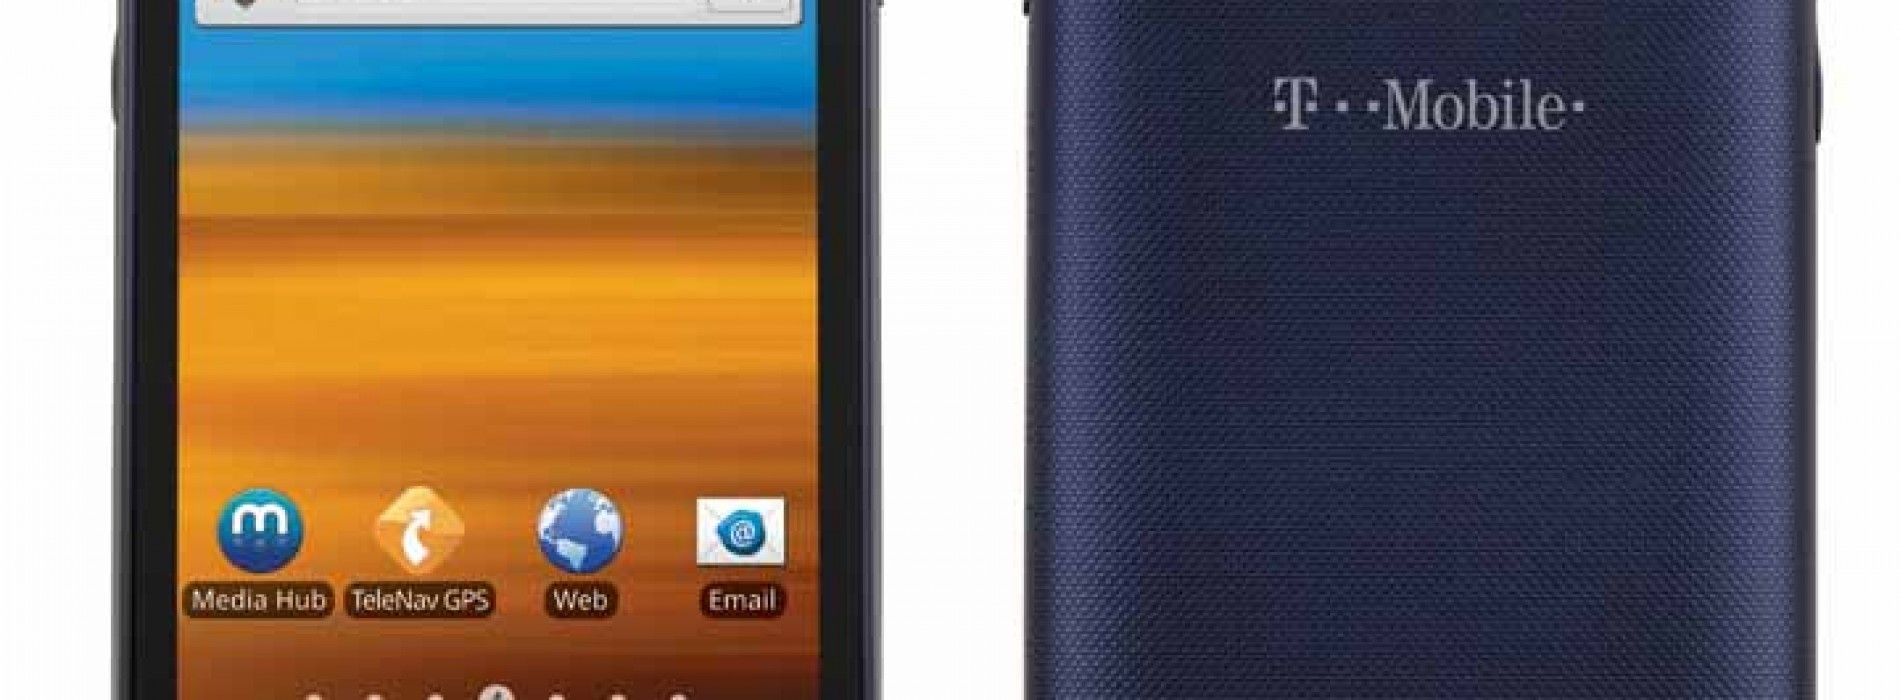 T-Mobile announces the Samsung Exhibit II 4G, available at Walmart starting tomorrow